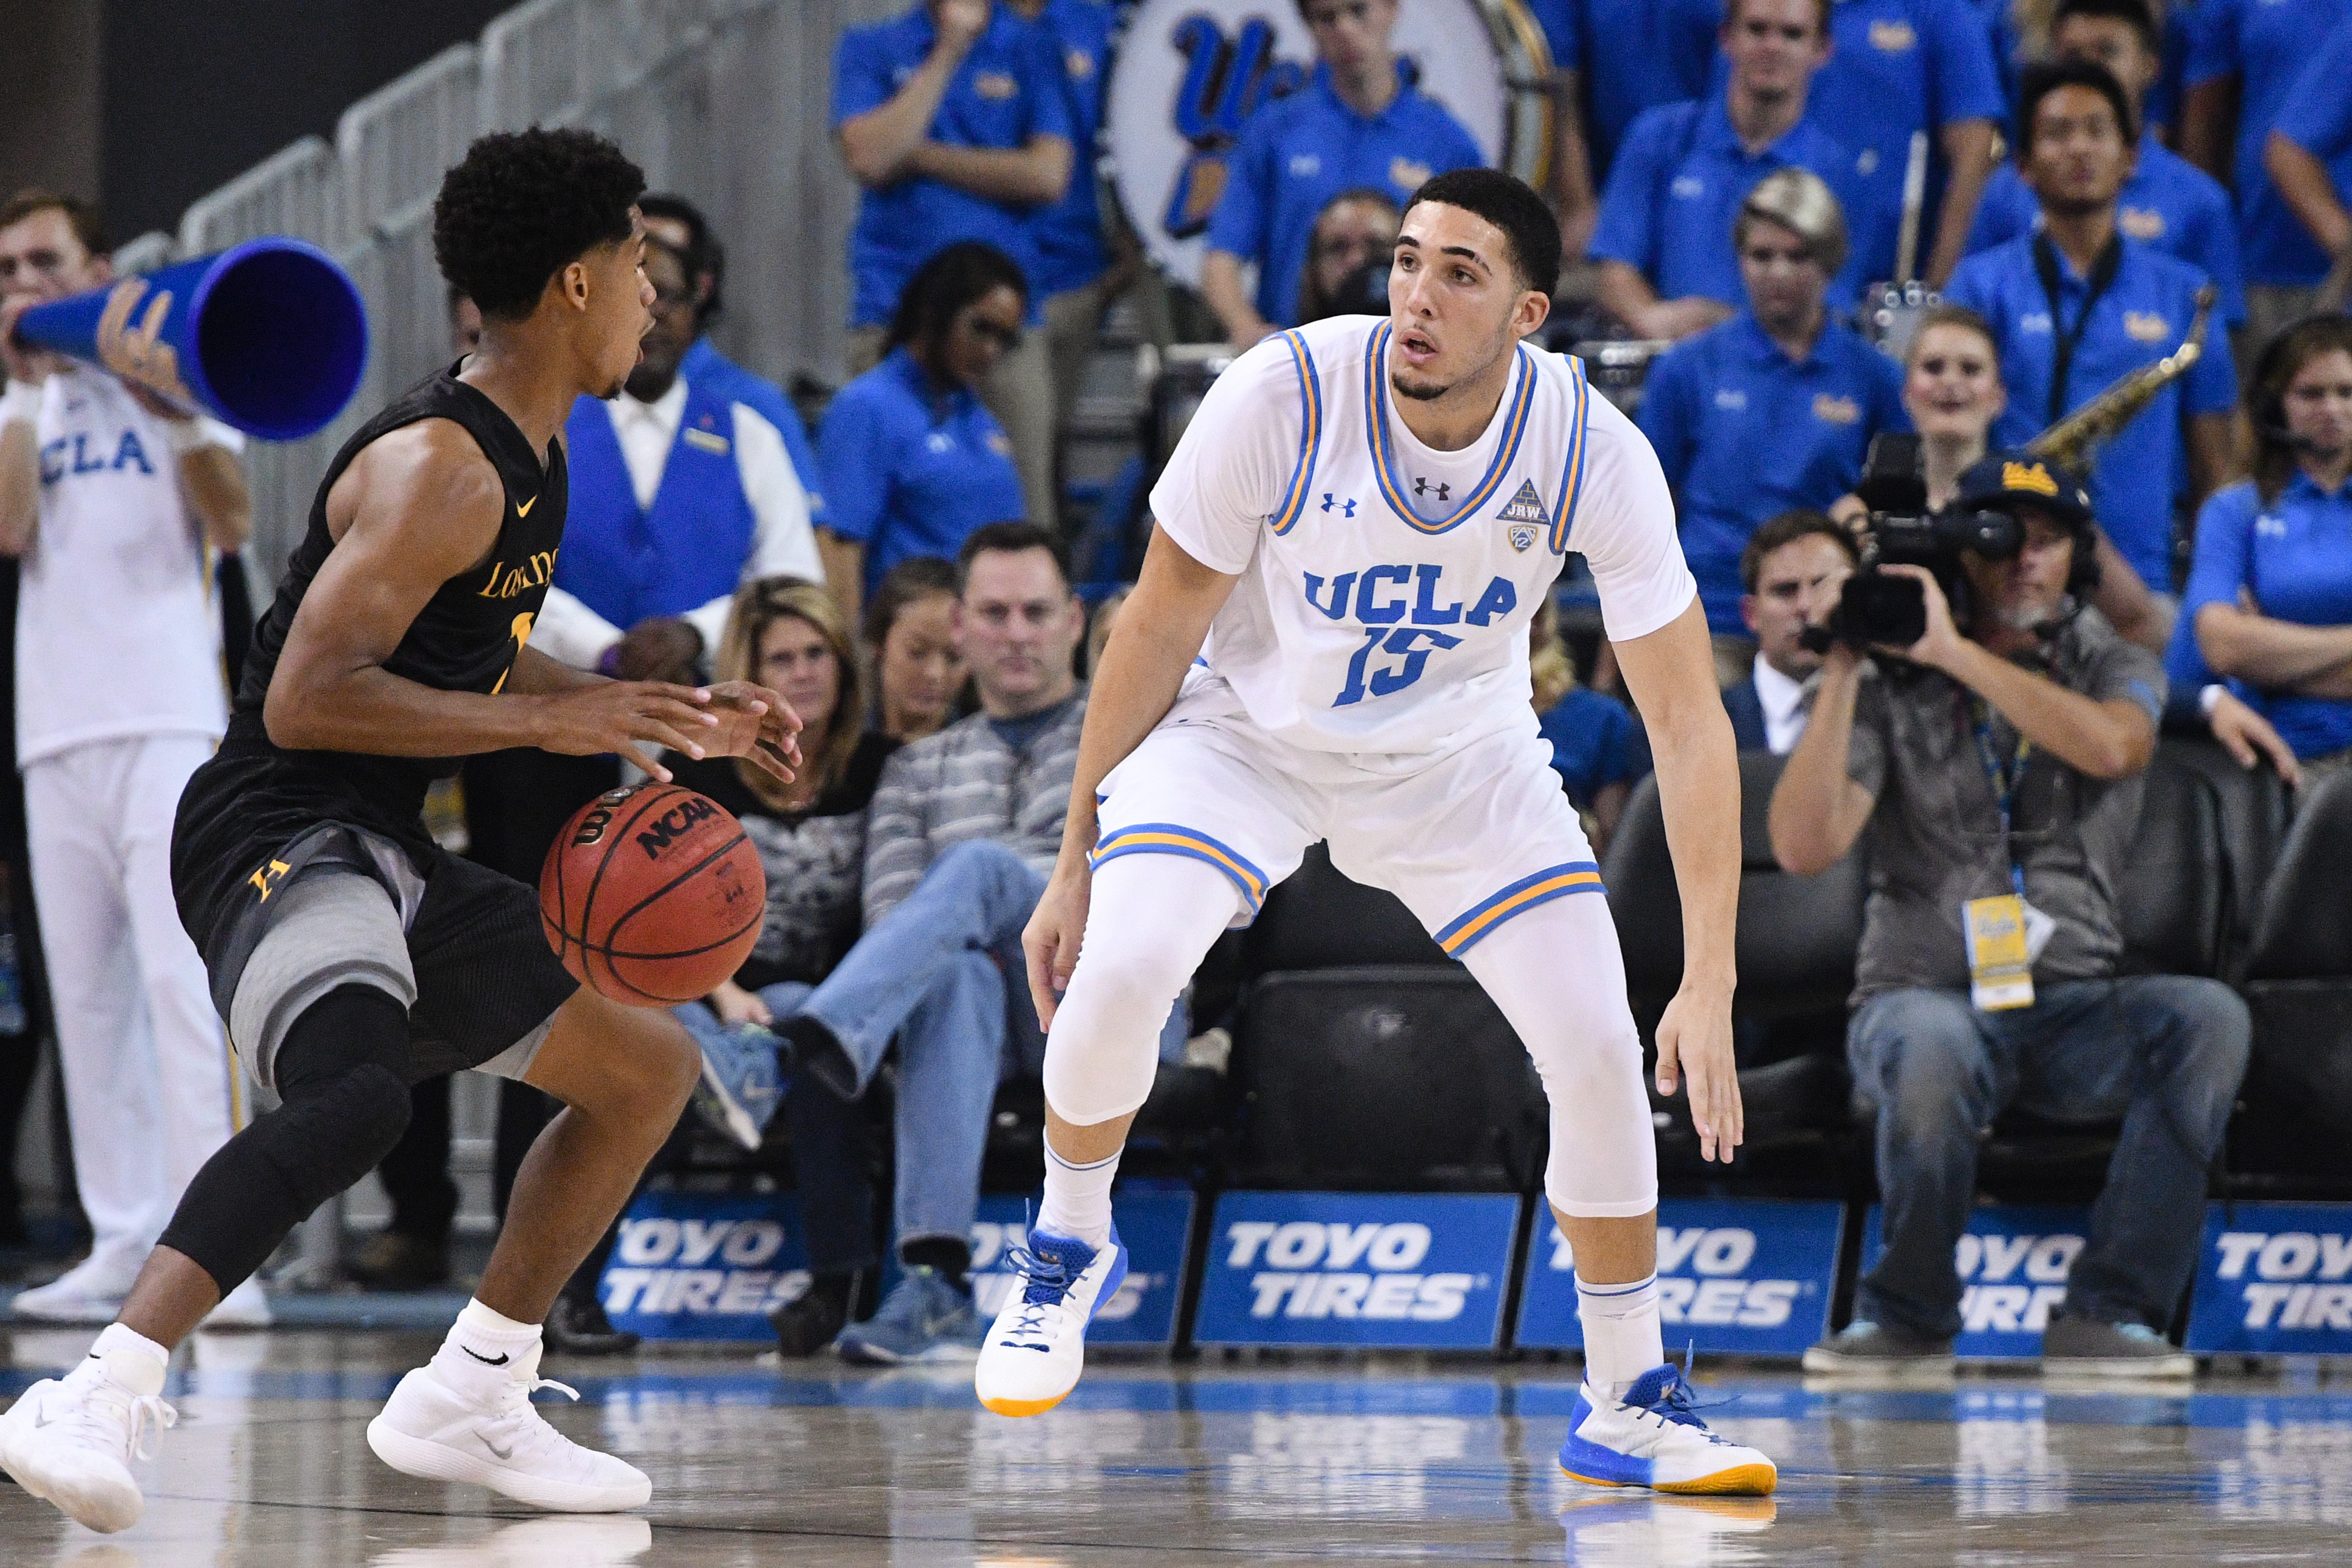 UCLA guard LiAngelo Ball (15) on defense during an college exhibition basketball game between the Cal State Los Angeles and the UCLA Bruins on November 1, 2017, at Pauley Pavilion in Los Angeles, CA.